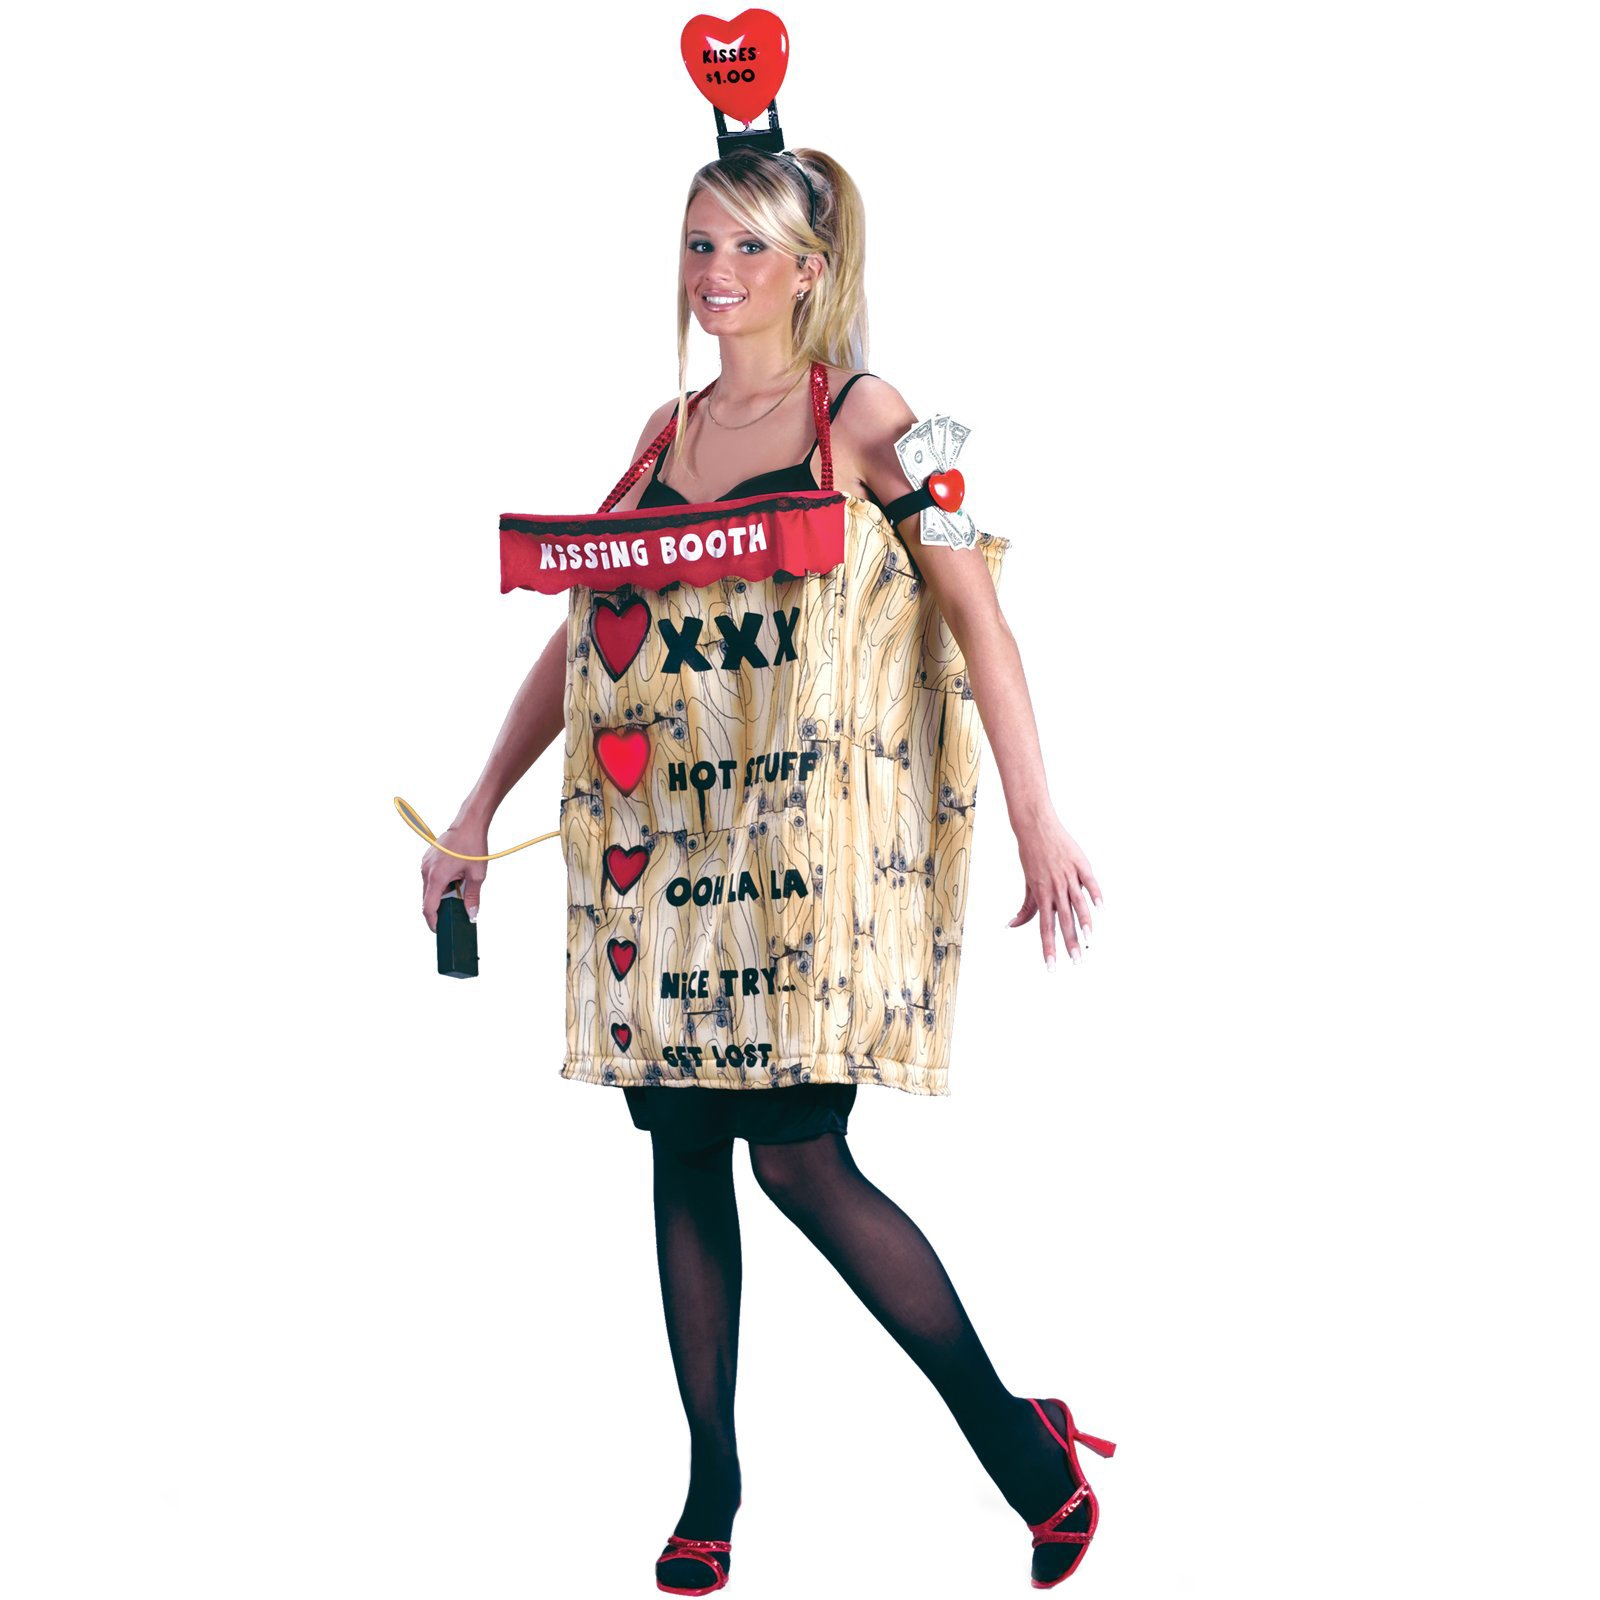 booth costume kissing2 - Clever Women Halloween Costumes